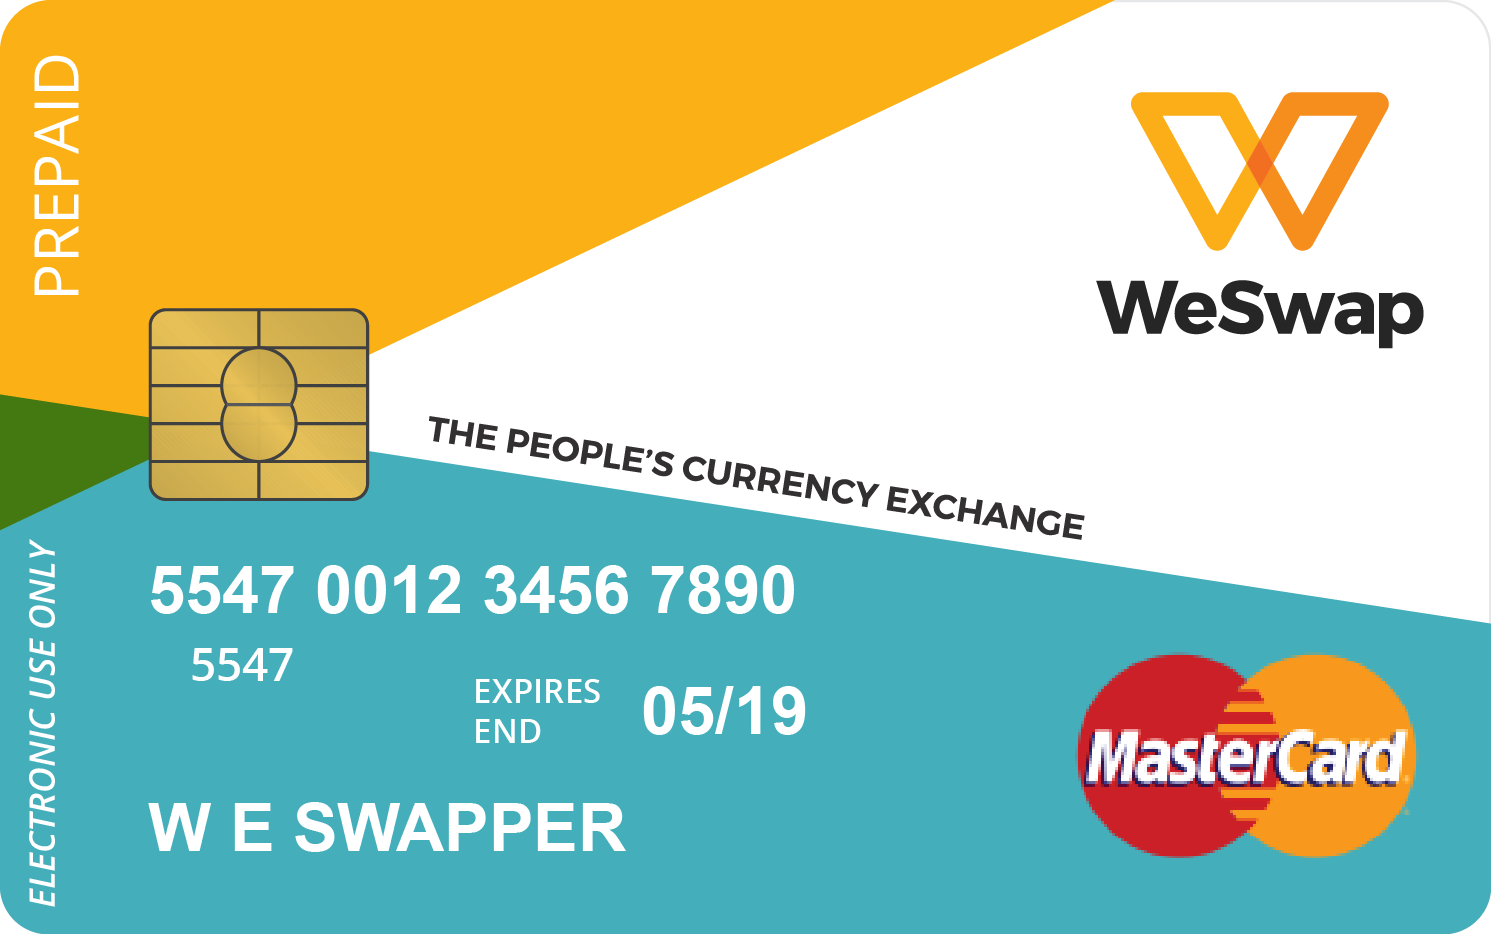 WeSwap MasterCard